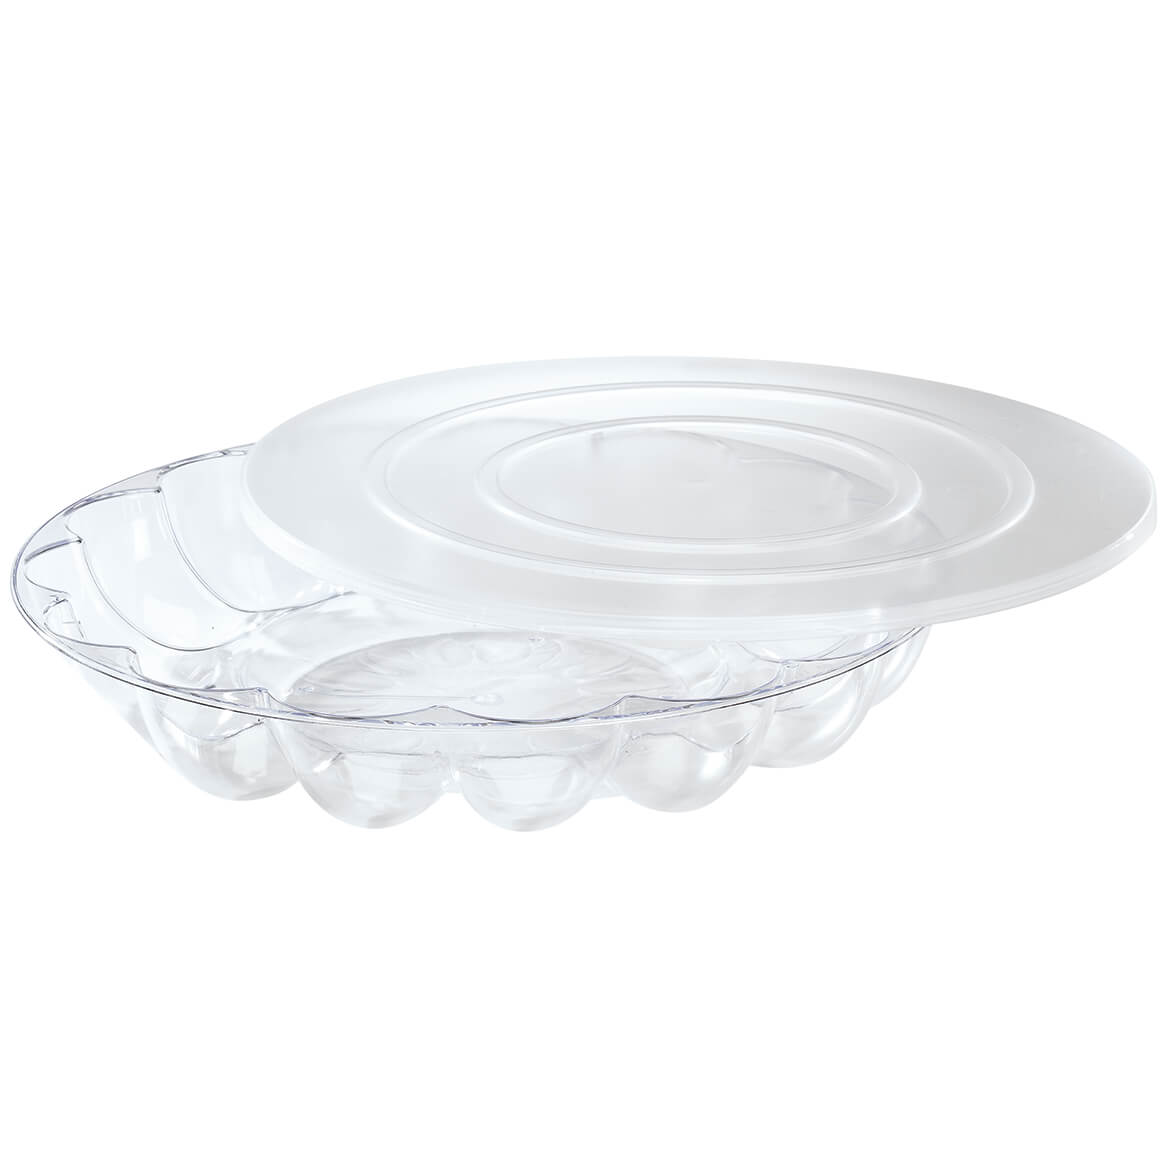 Deviled Egg Tray with Lid-371127